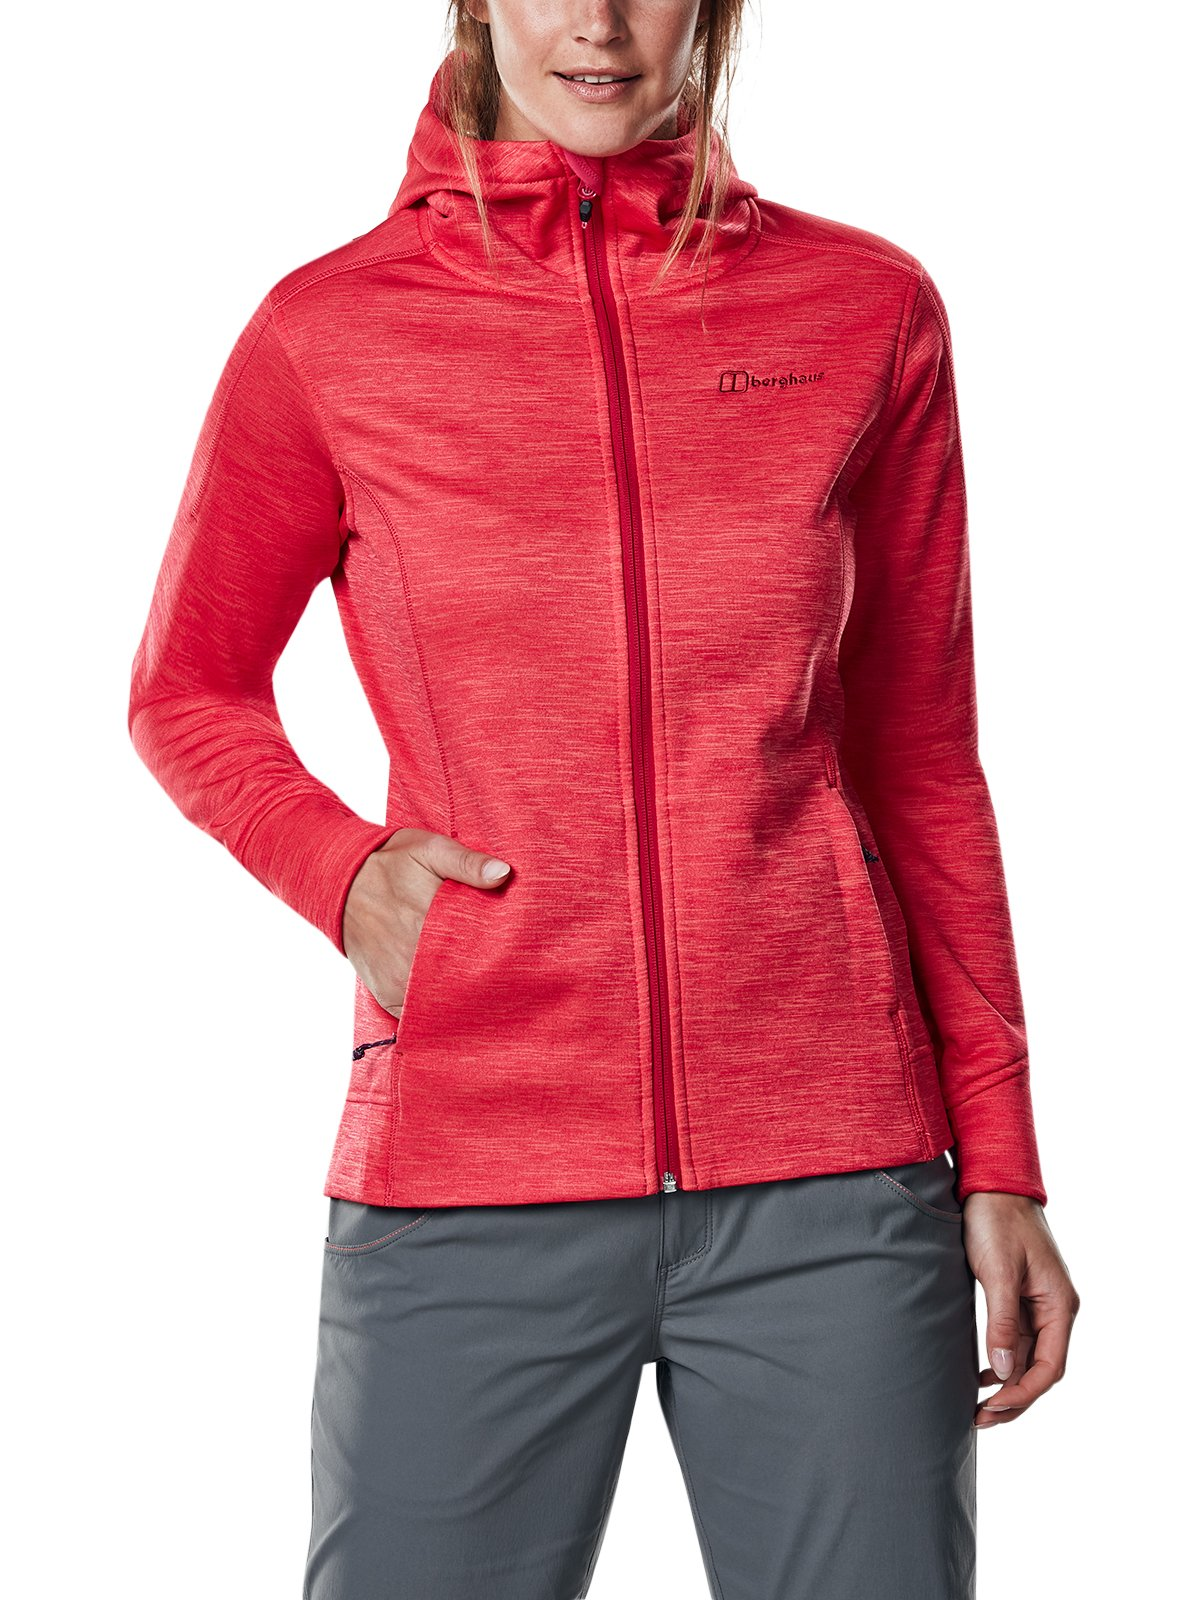 81NB4dg2wPL - Berghaus Women's Kamloops Full Zip Fleece Jacket